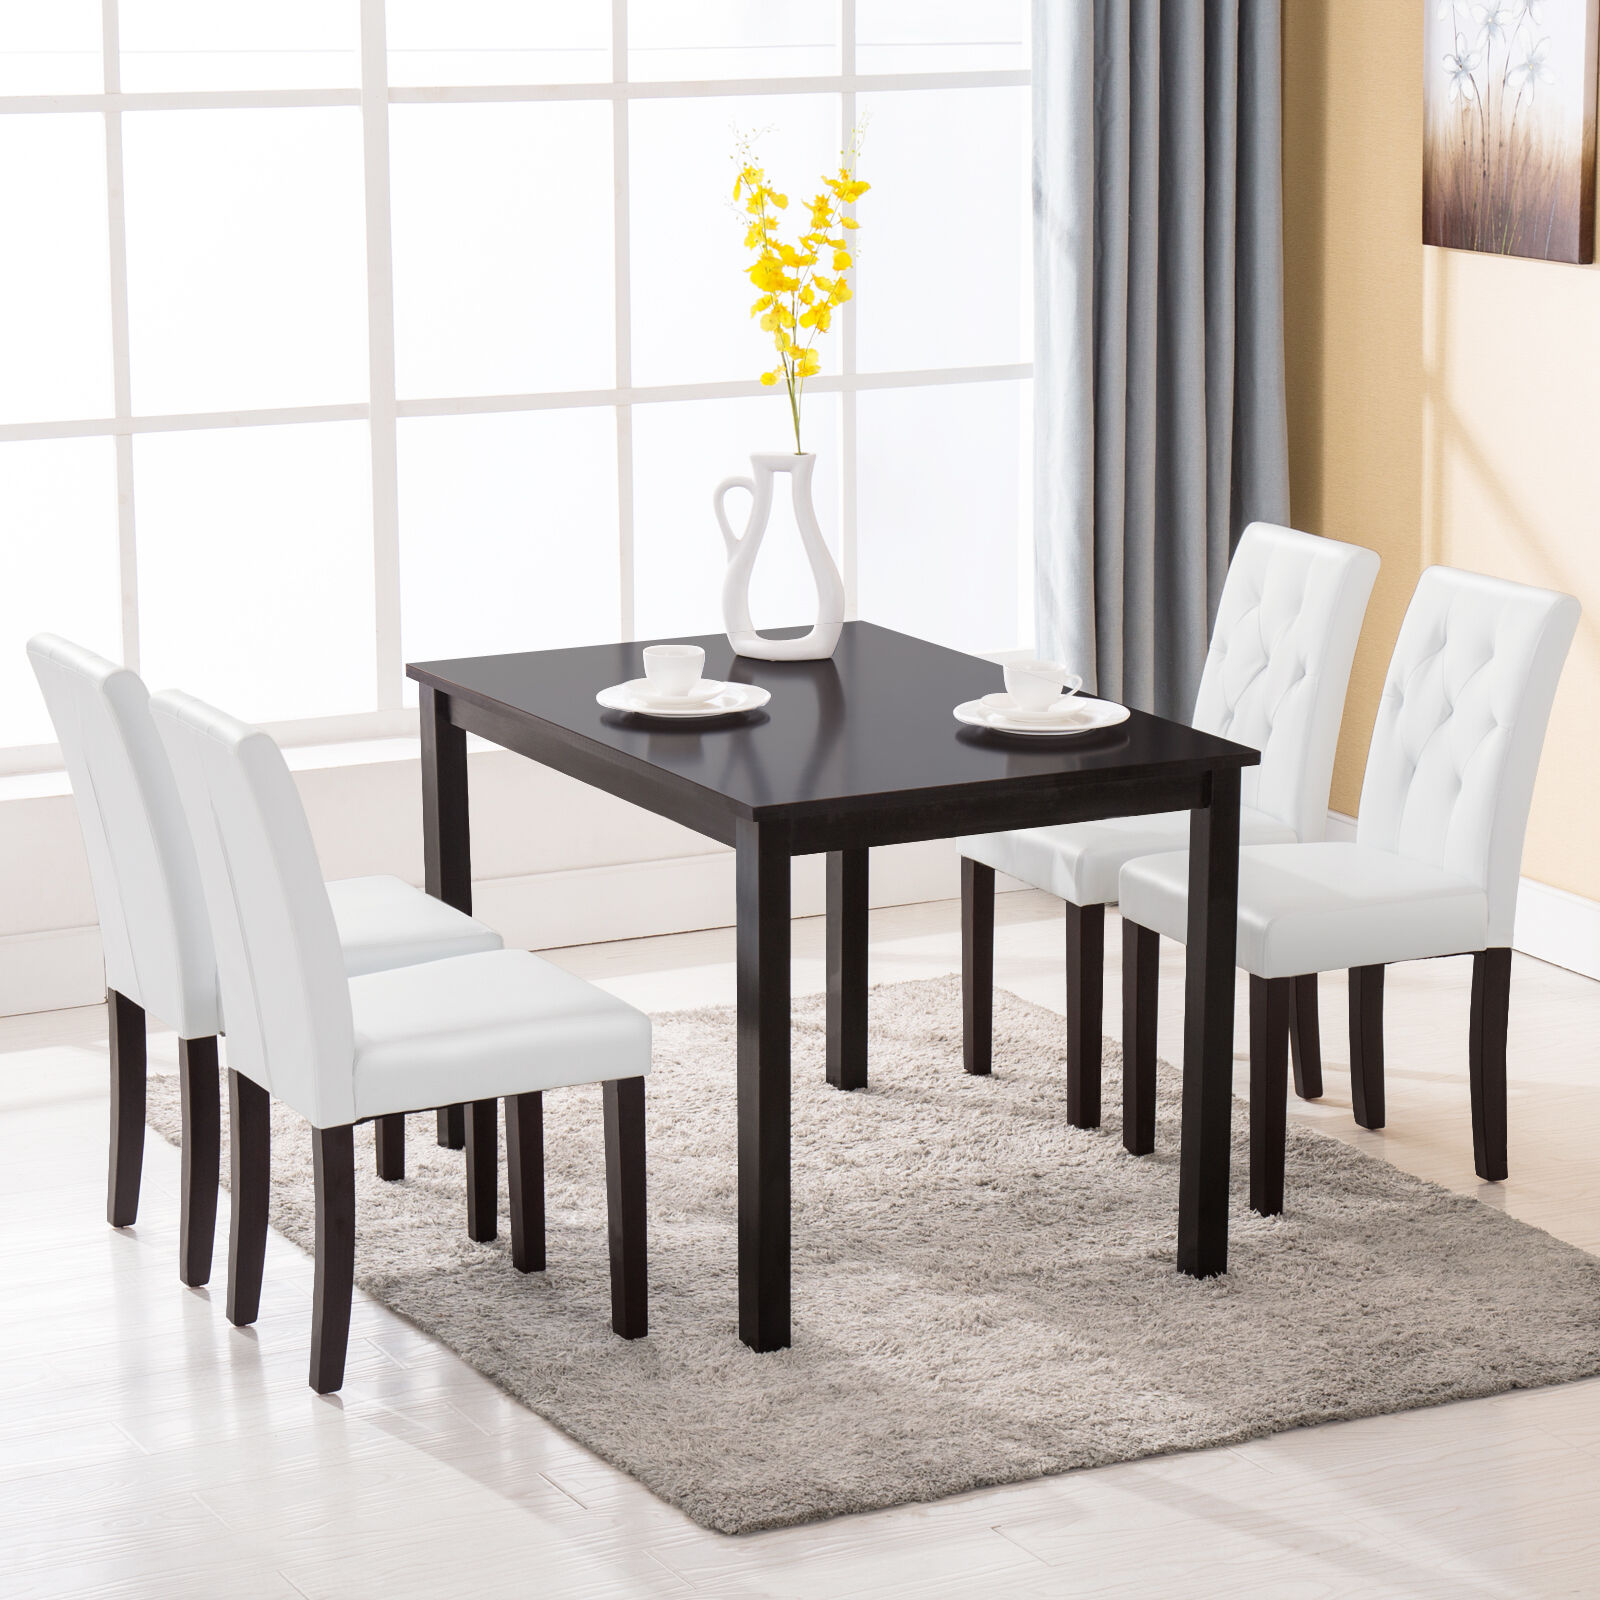 5 piece dining table set 4 chairs room kitchen dinette breakfast wood furniture ebay. Black Bedroom Furniture Sets. Home Design Ideas